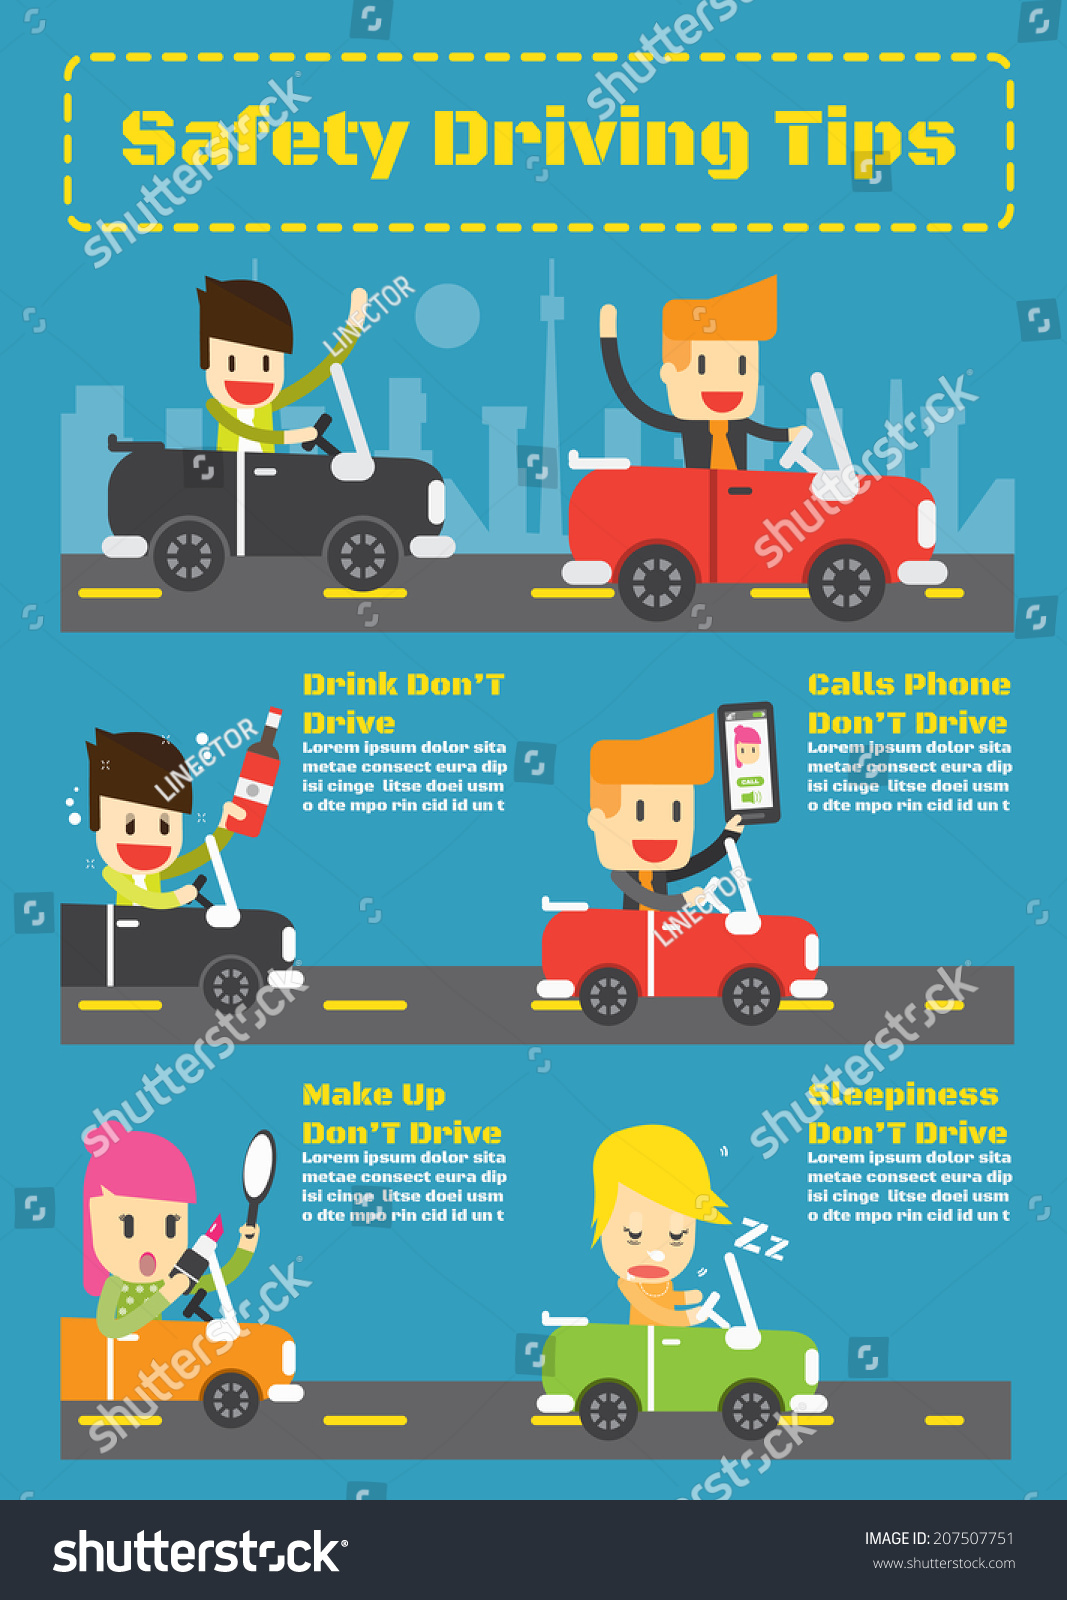 Safety Driving Tips Vector Infographic Elements